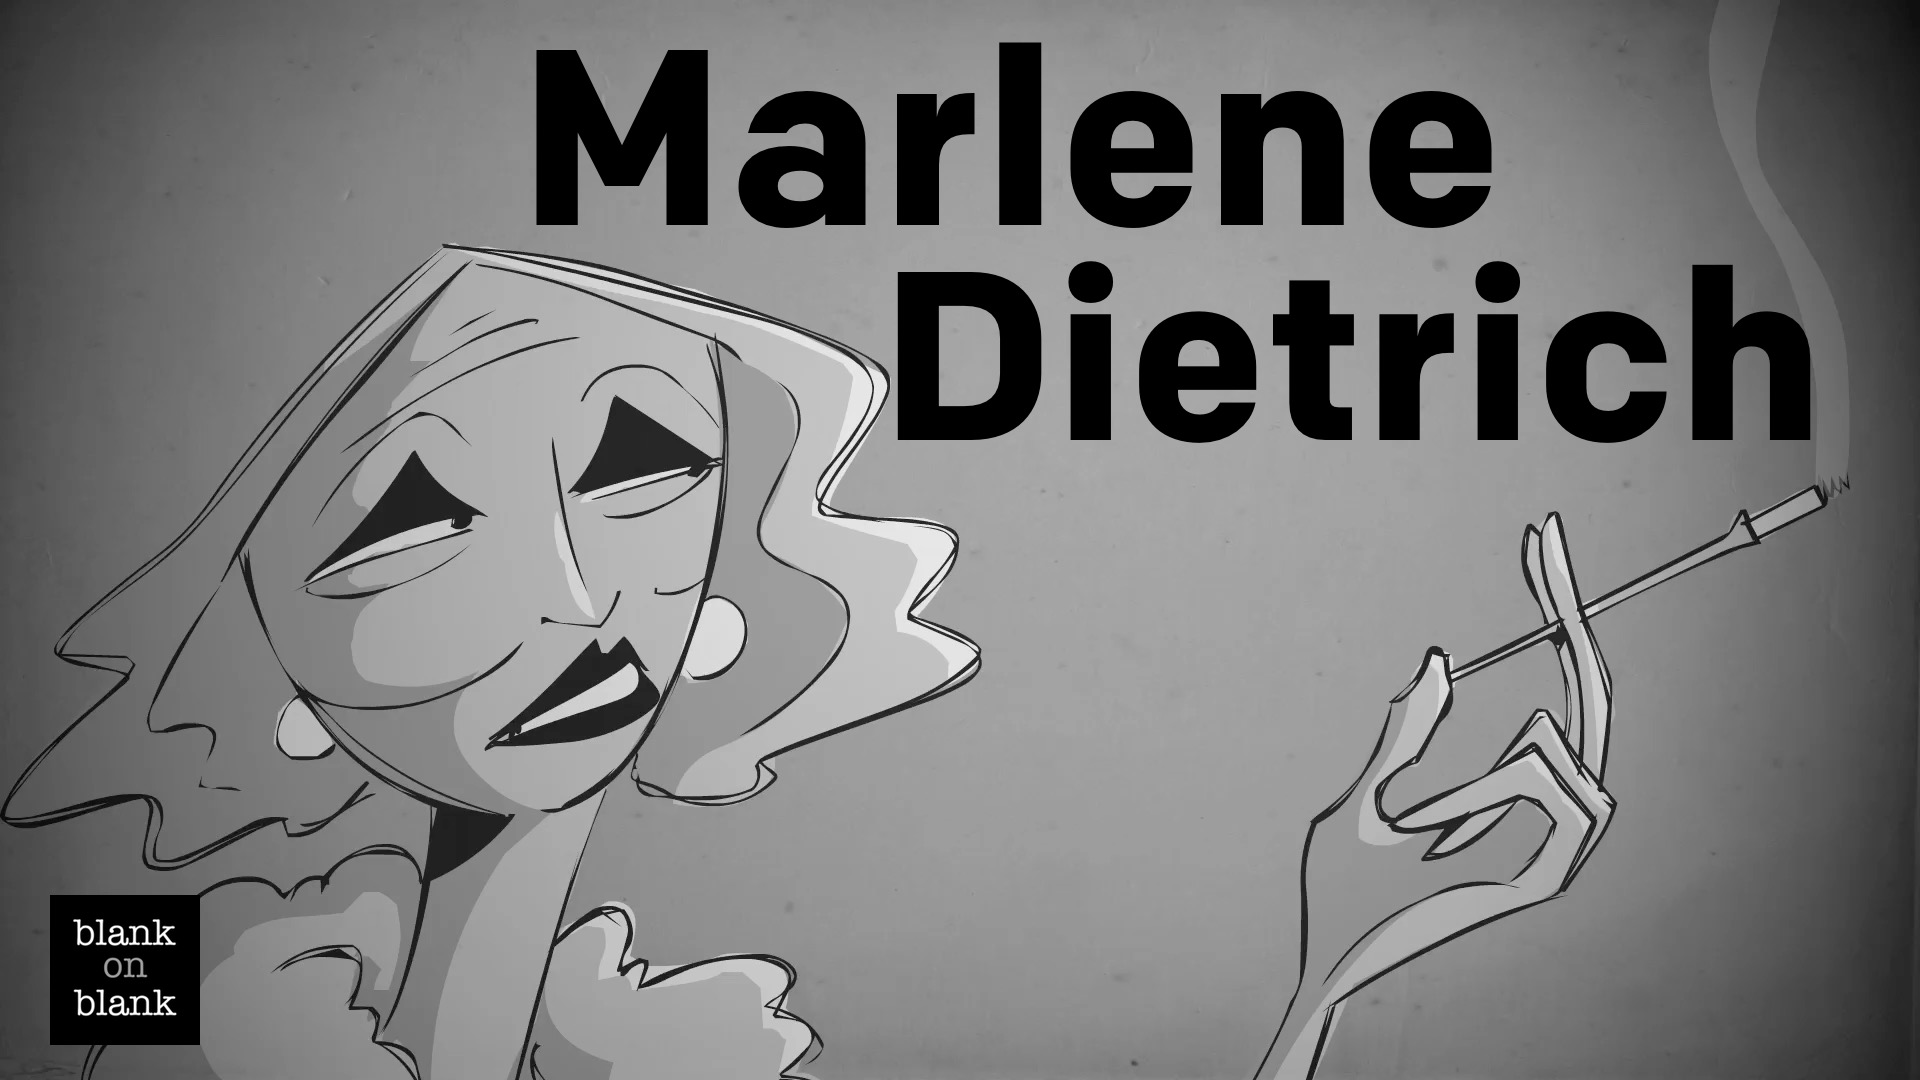 Marlene Dietrich on Sex Symbols